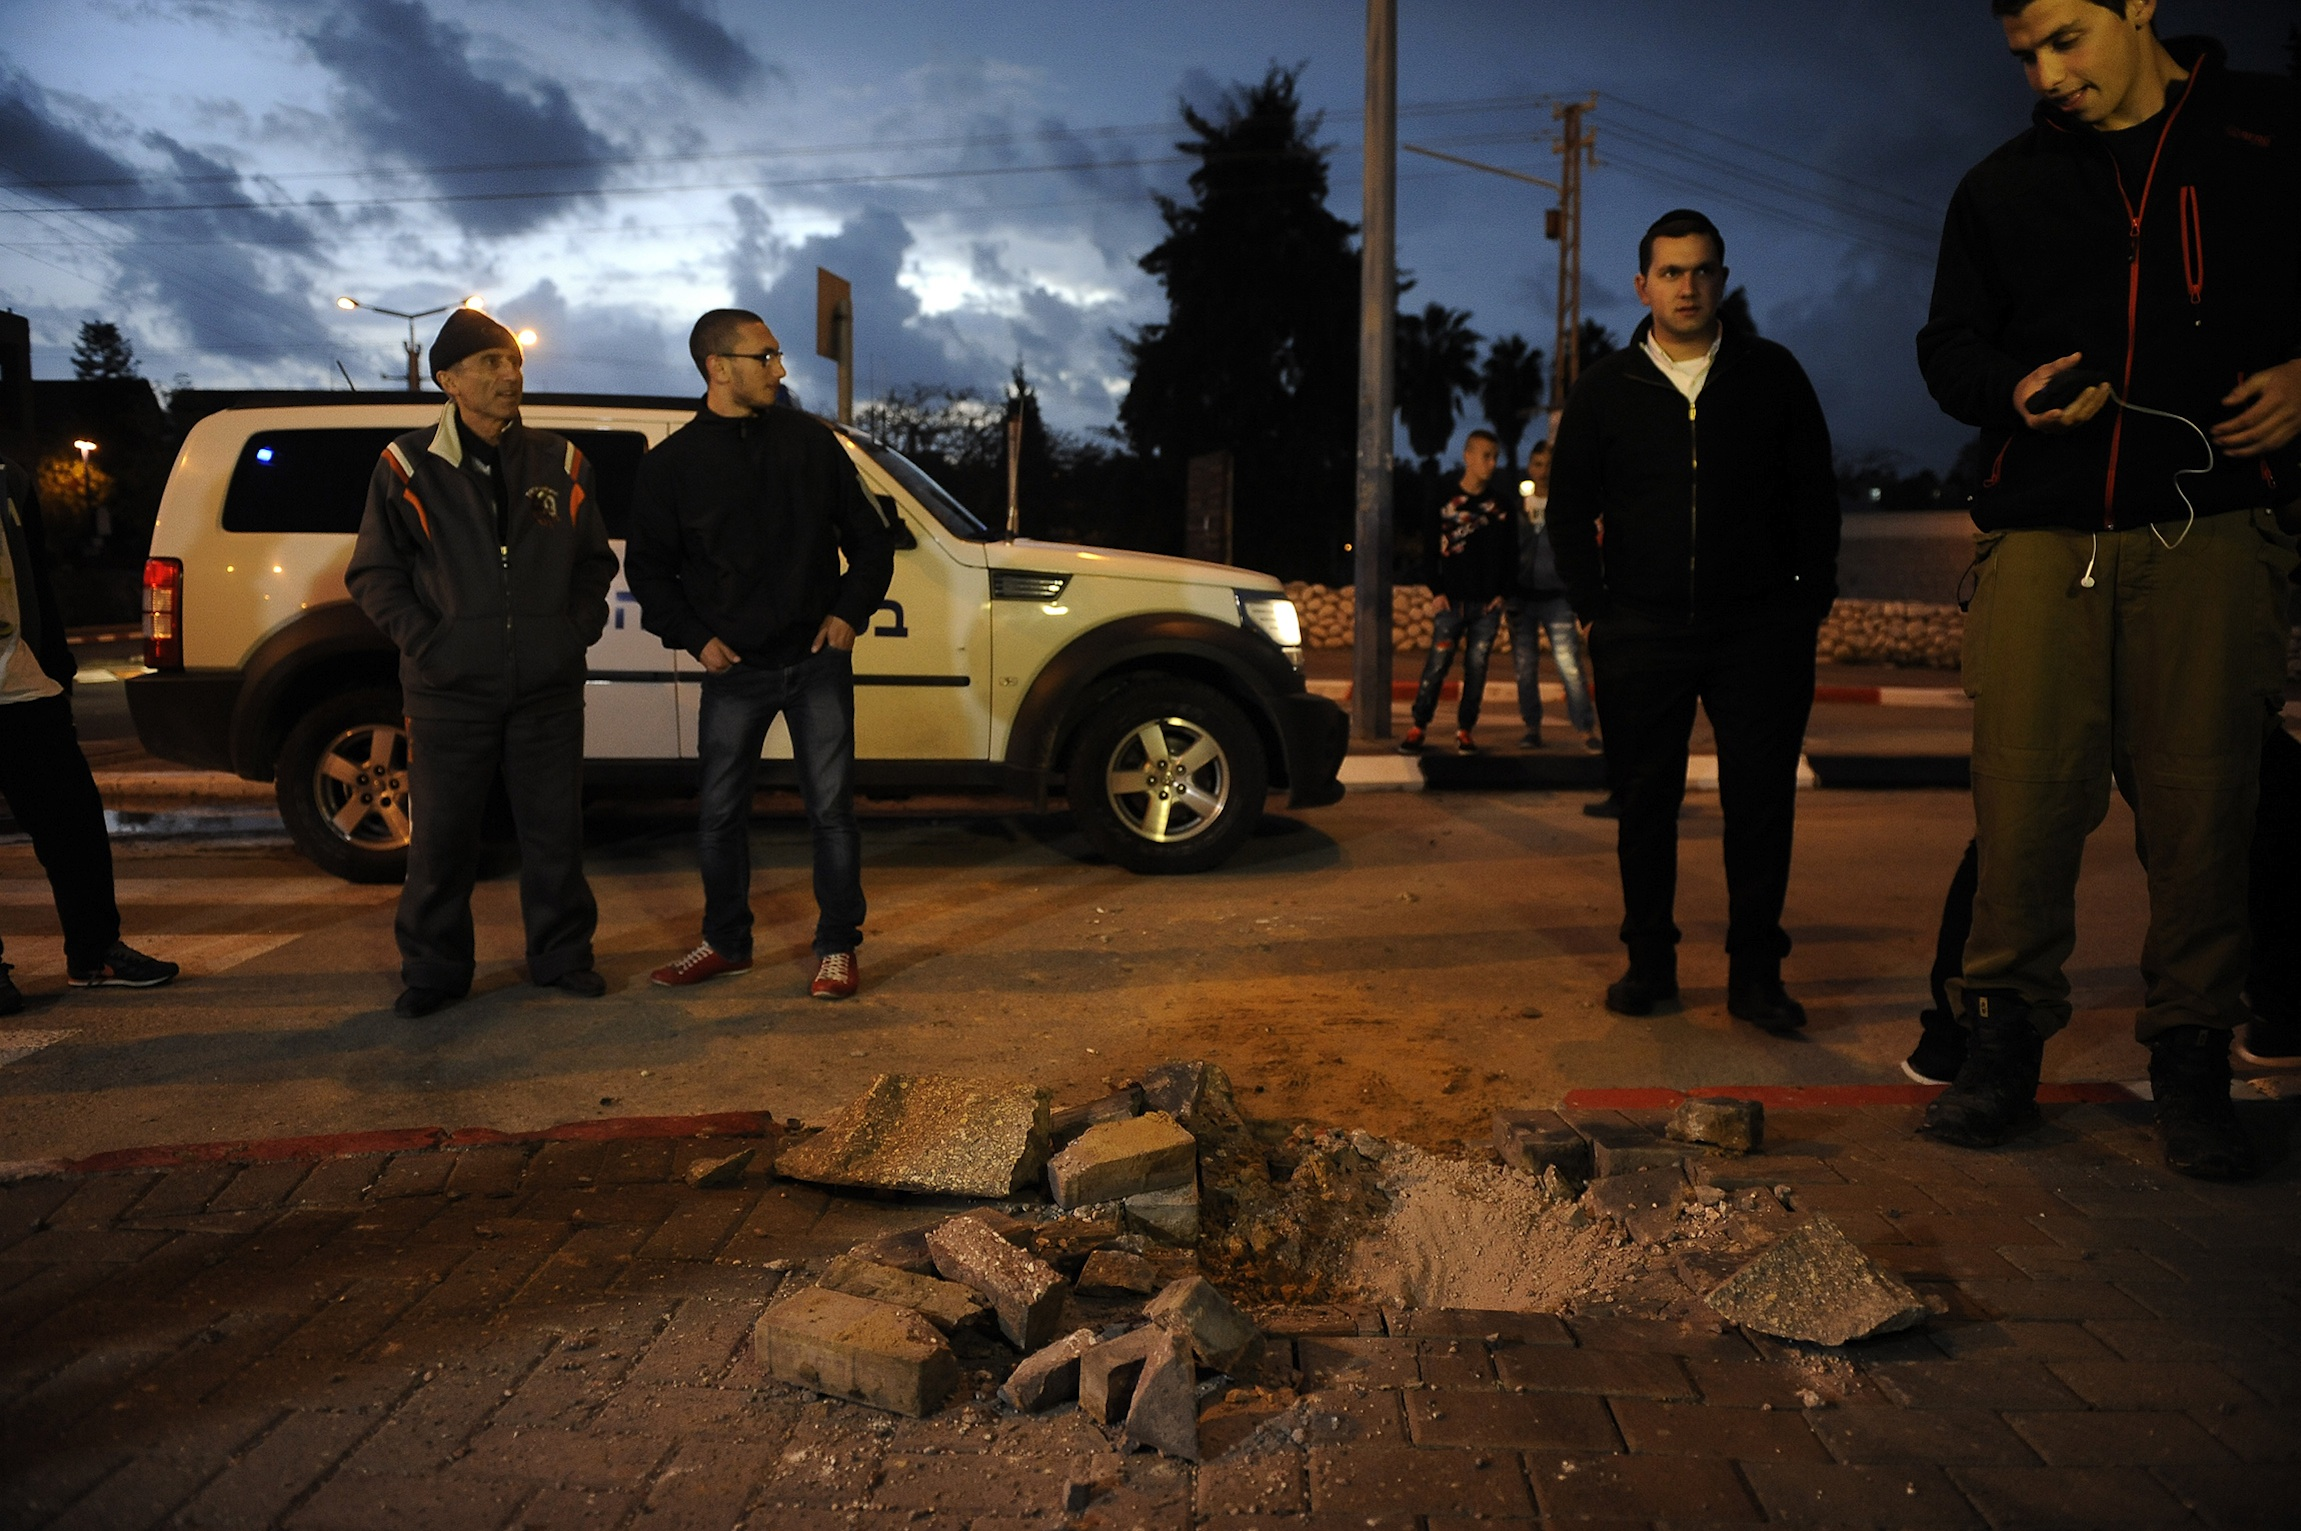 Click photo to download. Caption: Israelis stand near a hole caused by a Palestinian rocket fired from Gaza into the southern Israeli city of Sdeort on March 12, 2014. At least 60 Islamic Jihad rockets were launched from Gaza at Israel from March 12-13. Credit: Flash90.